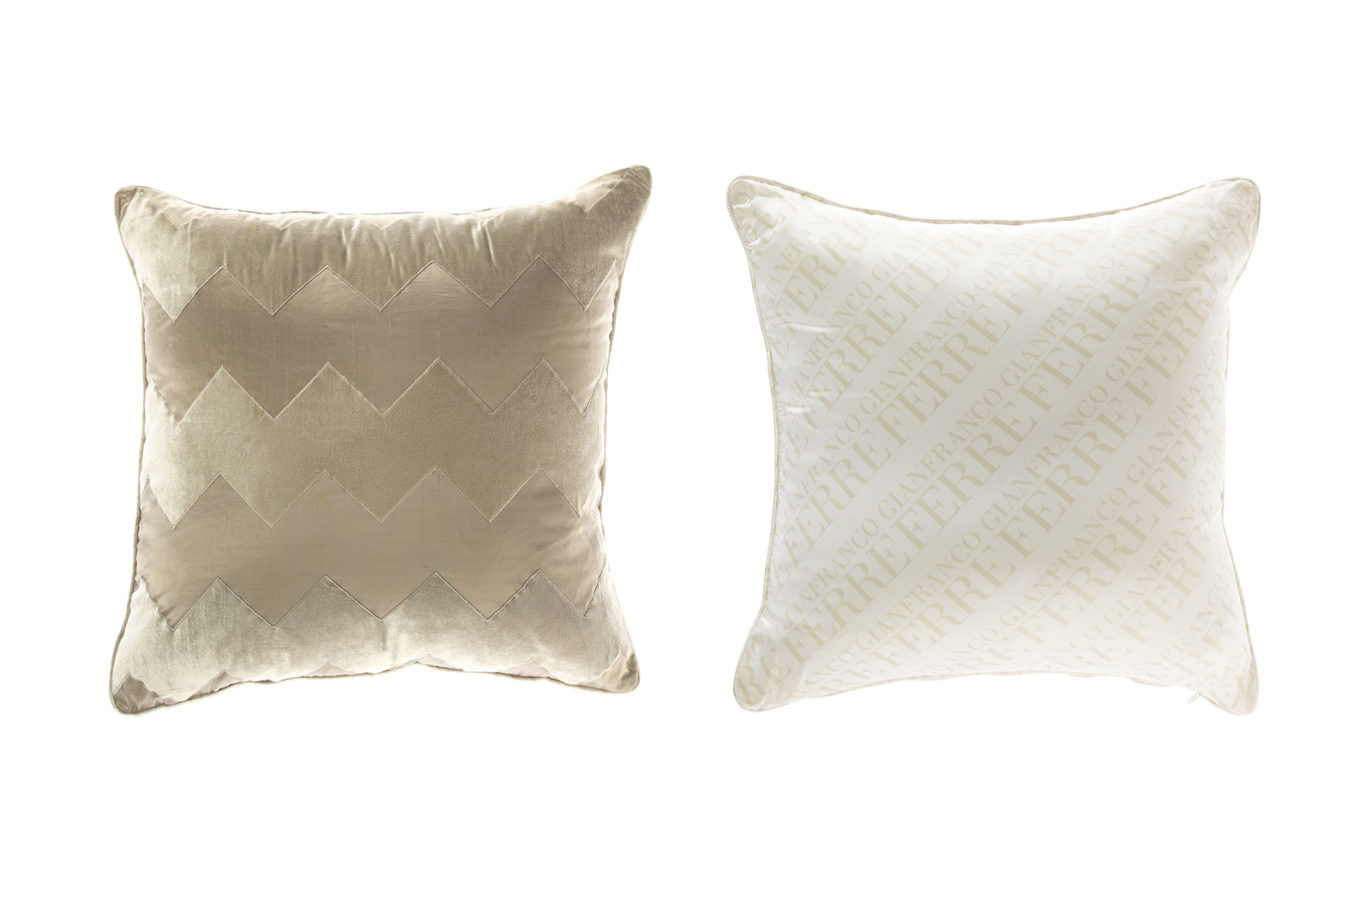 Gianfranco Ferre Home Alameda Cushion 02